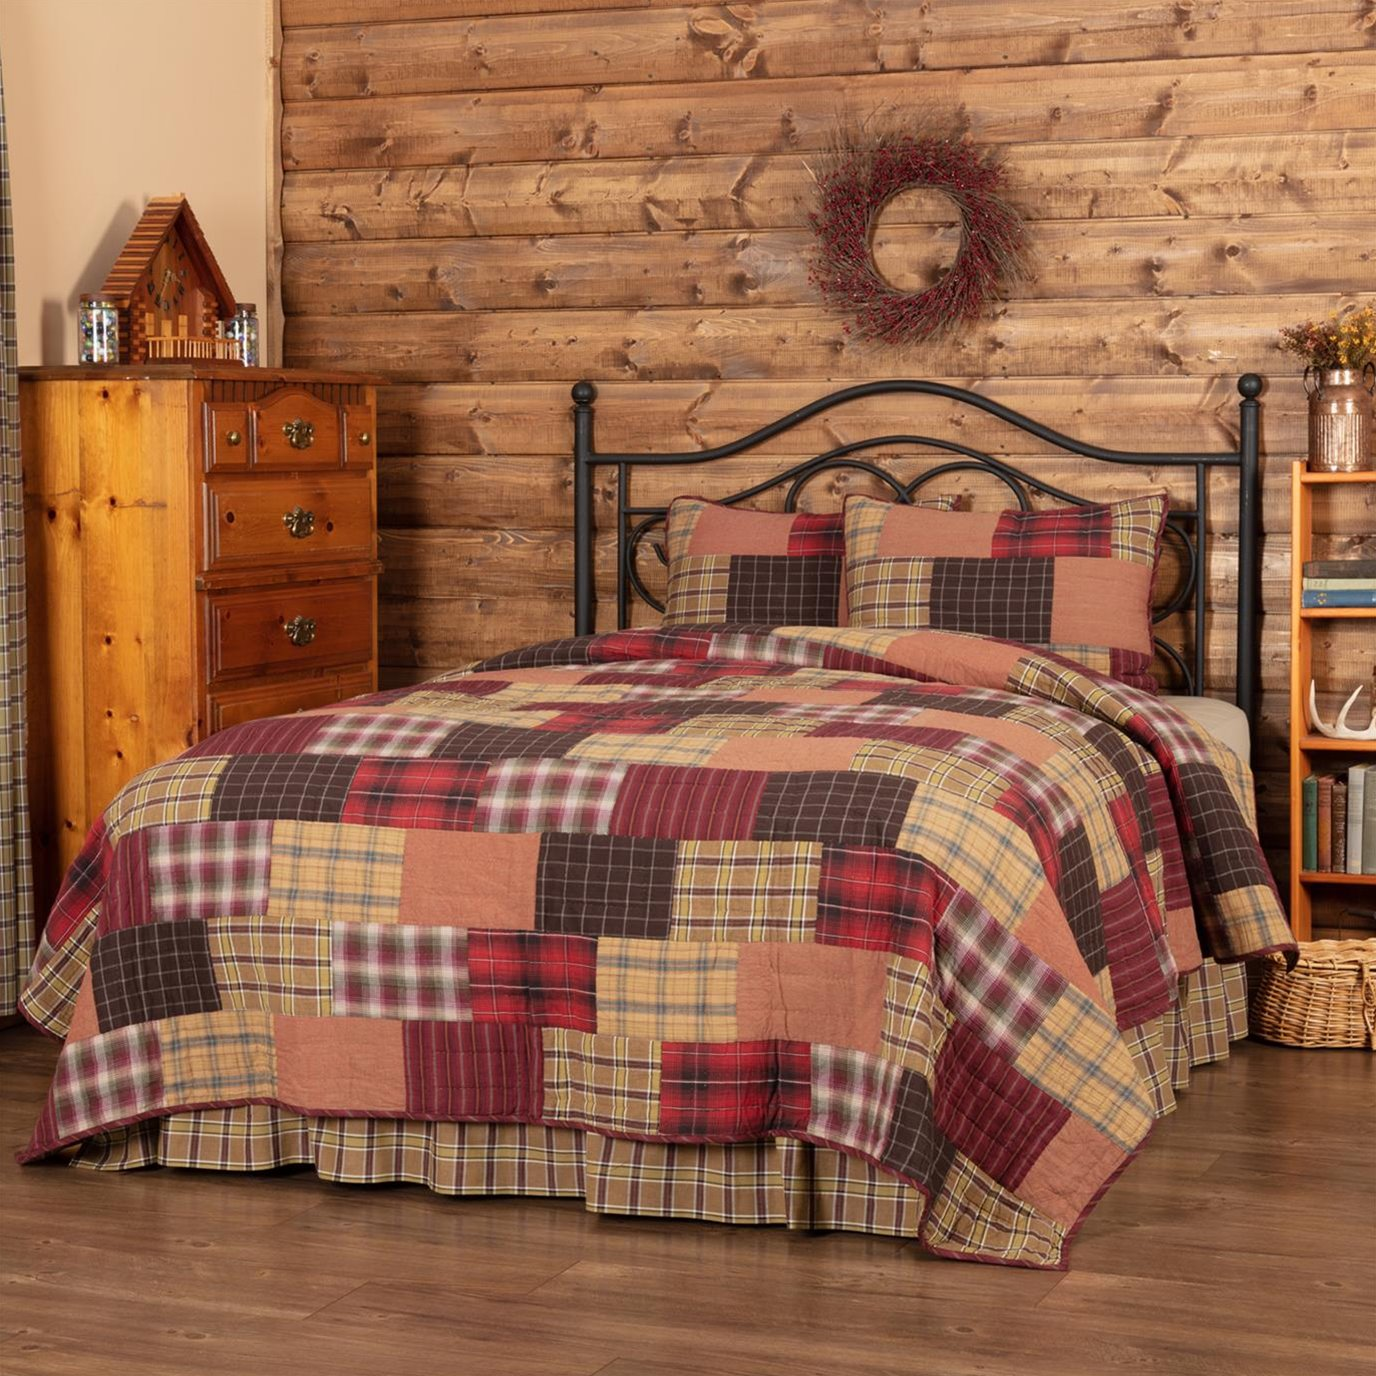 Wyatt California King Quilt Set; 1-Quilt 130Wx115L w/2 Shams 21x37